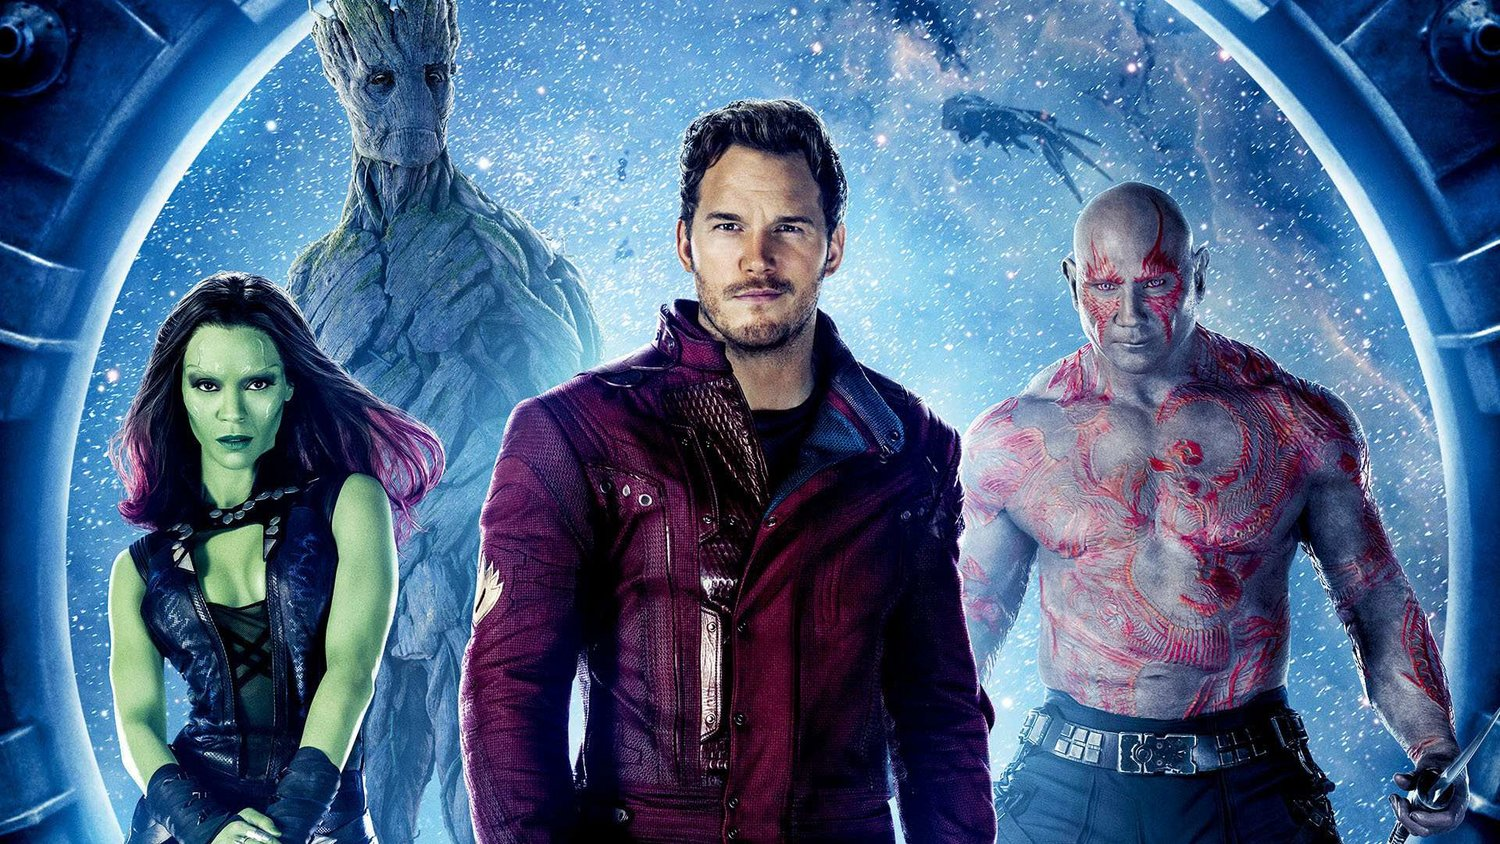 GUARDIANS OF THE GALAXY VOL 2 Is Not Connected to AVENGERS: INFINITY WAR